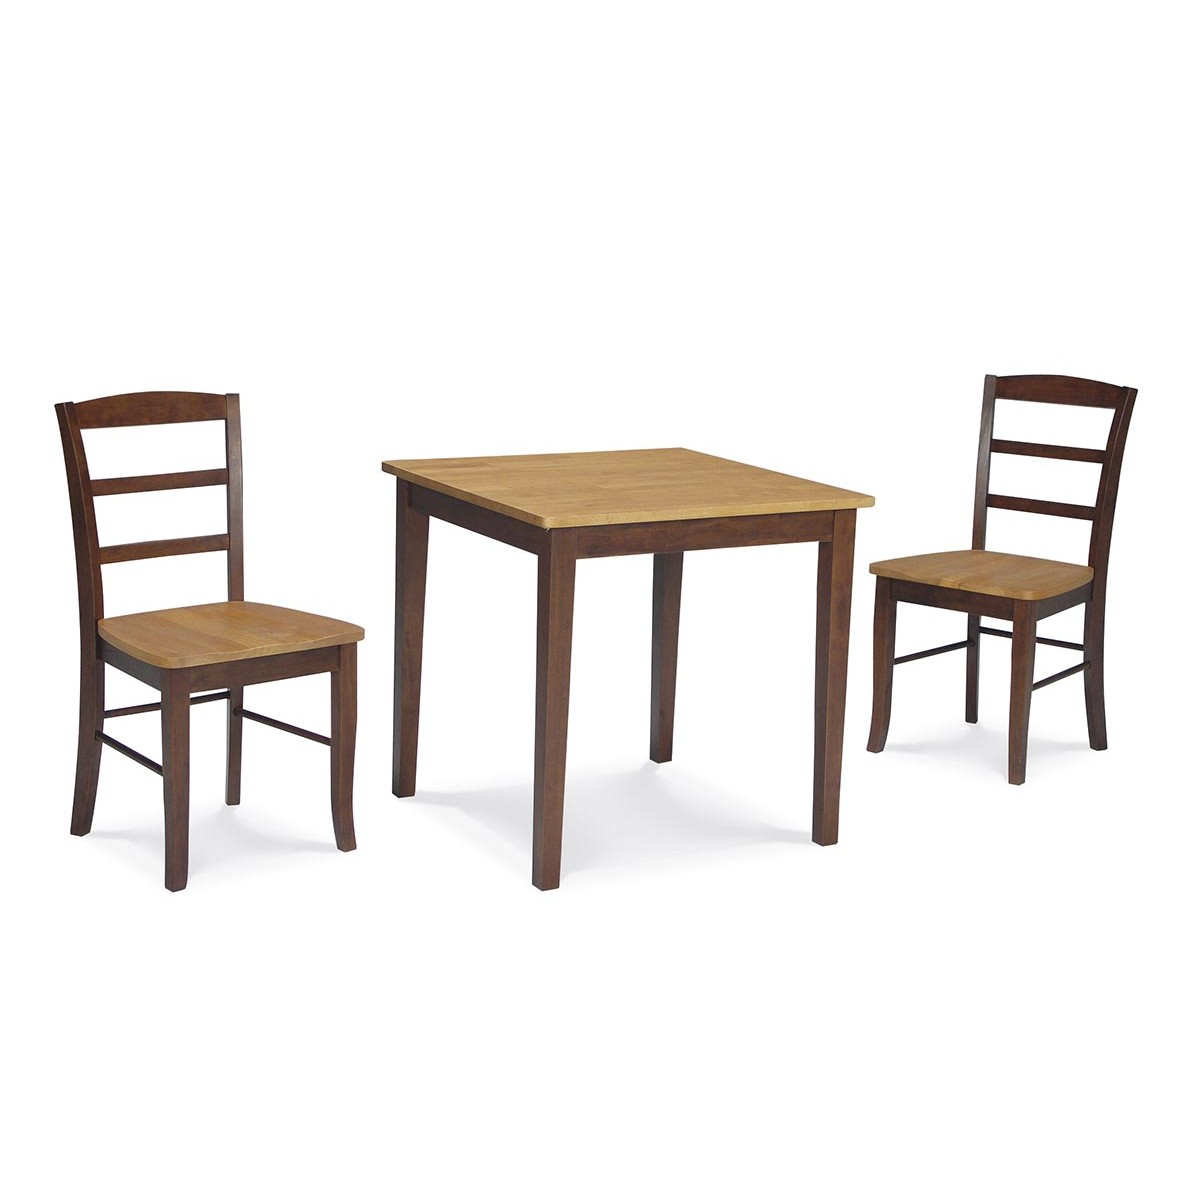 John Thomas 30x30 Dining And Pub Table Series From $22800. Telescoping Desk Legs. Patio Table With Cooler. Under Desk Tray. Kids Side Table. Science Table. Armoire Desk Ikea. Help Desk Support Companies. Modern Desk Set